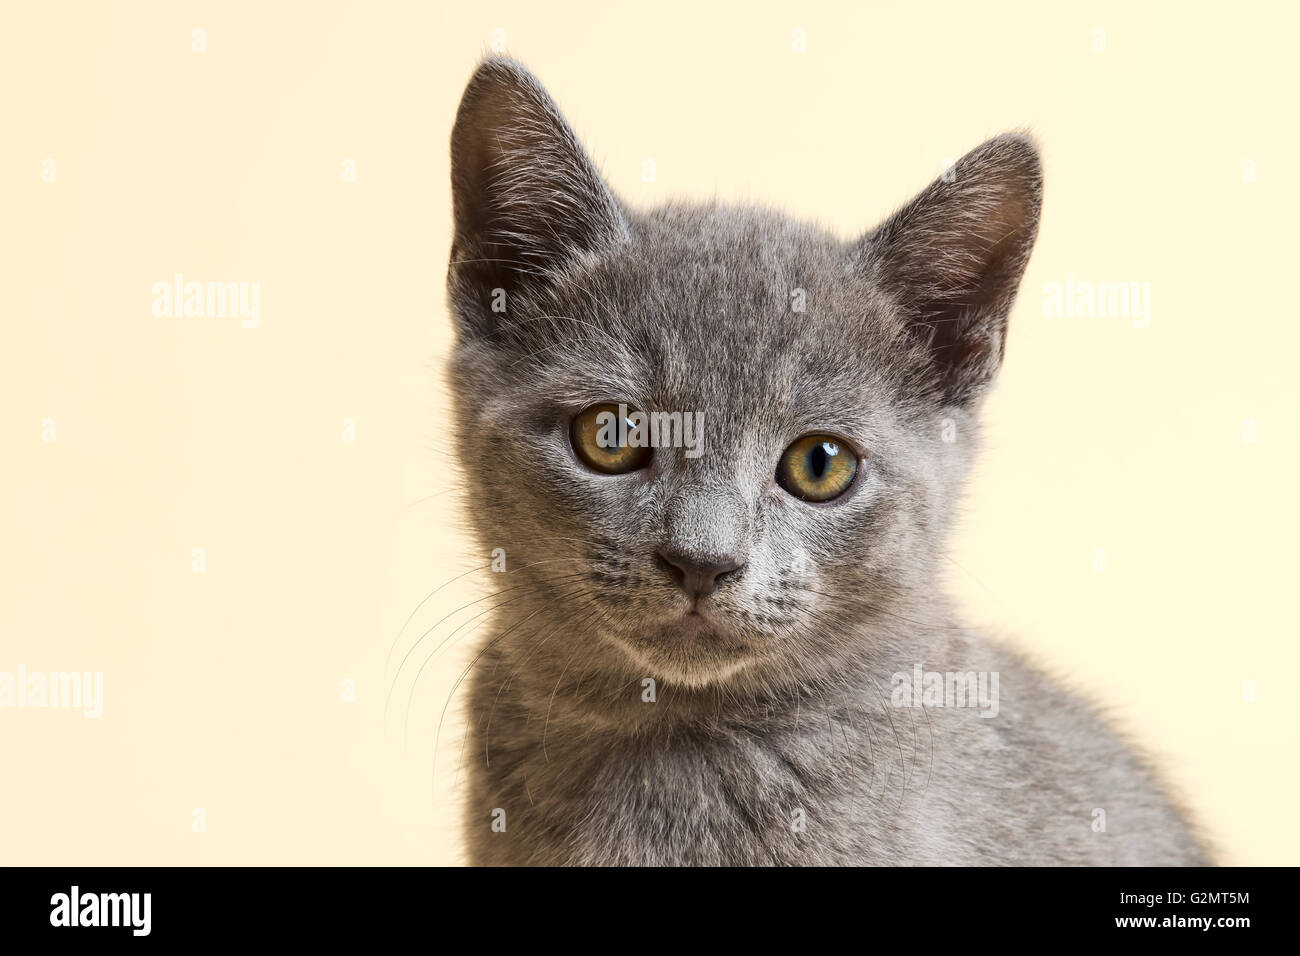 Purebred Cat Russian Blue Kitten 9 weeks old Stock